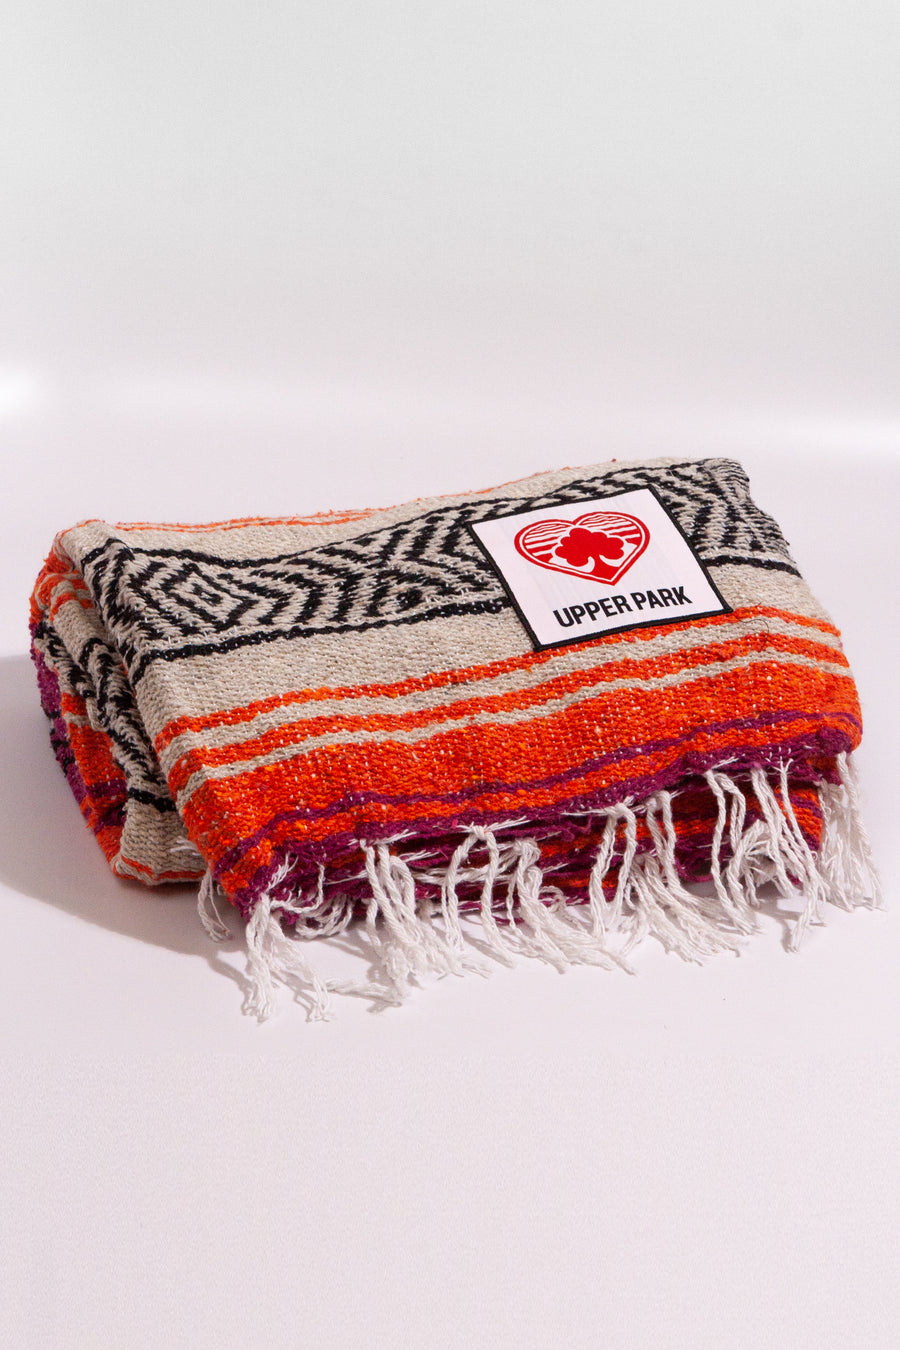 Mexican Blanket Hot Pink/Orange/Tan